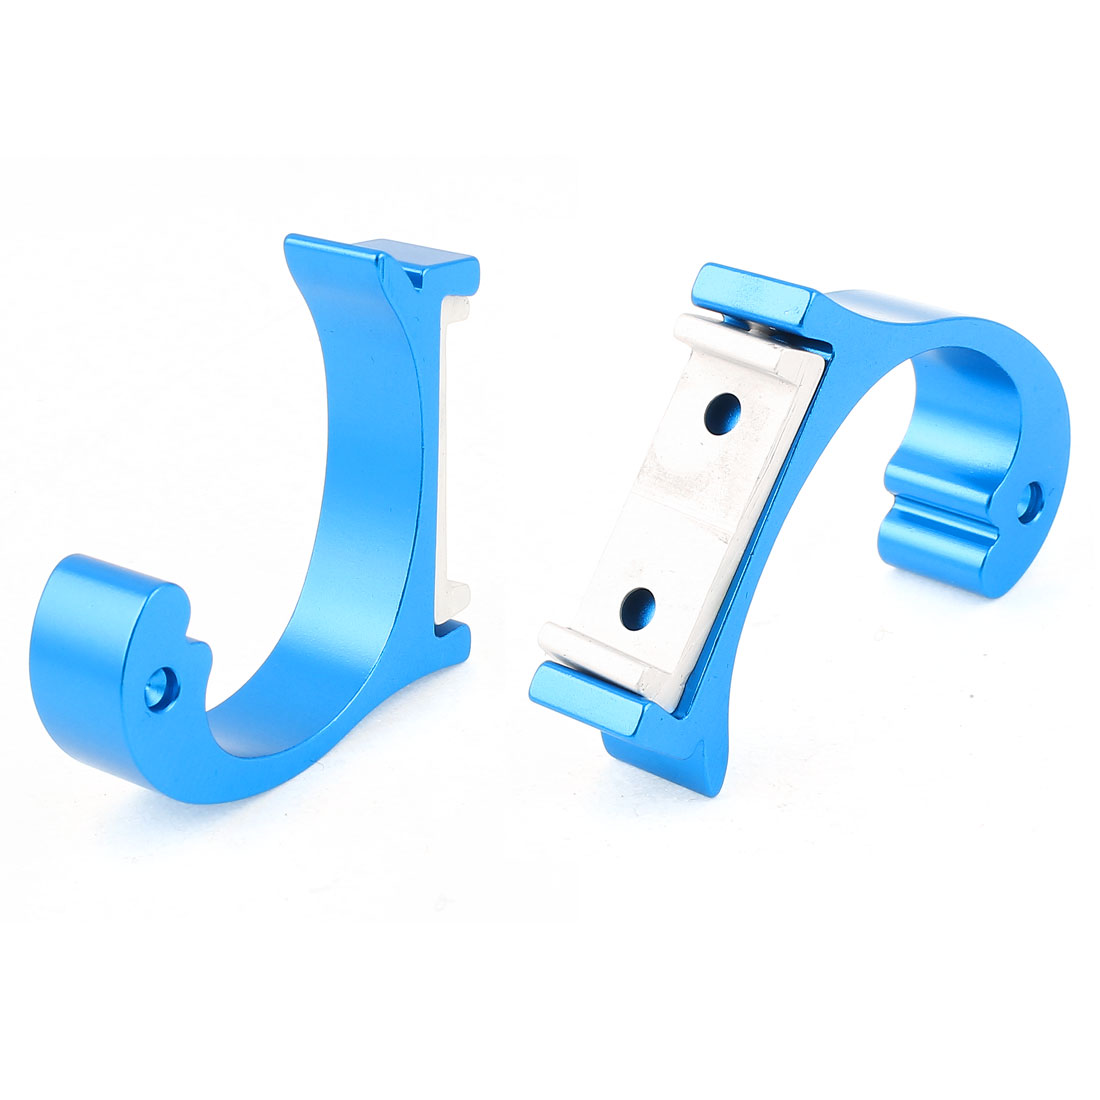 2 Pcs Aluminum Wall Mounted Bathroom Towel Holder Robe Hooks Hangers Sky Blue 2""